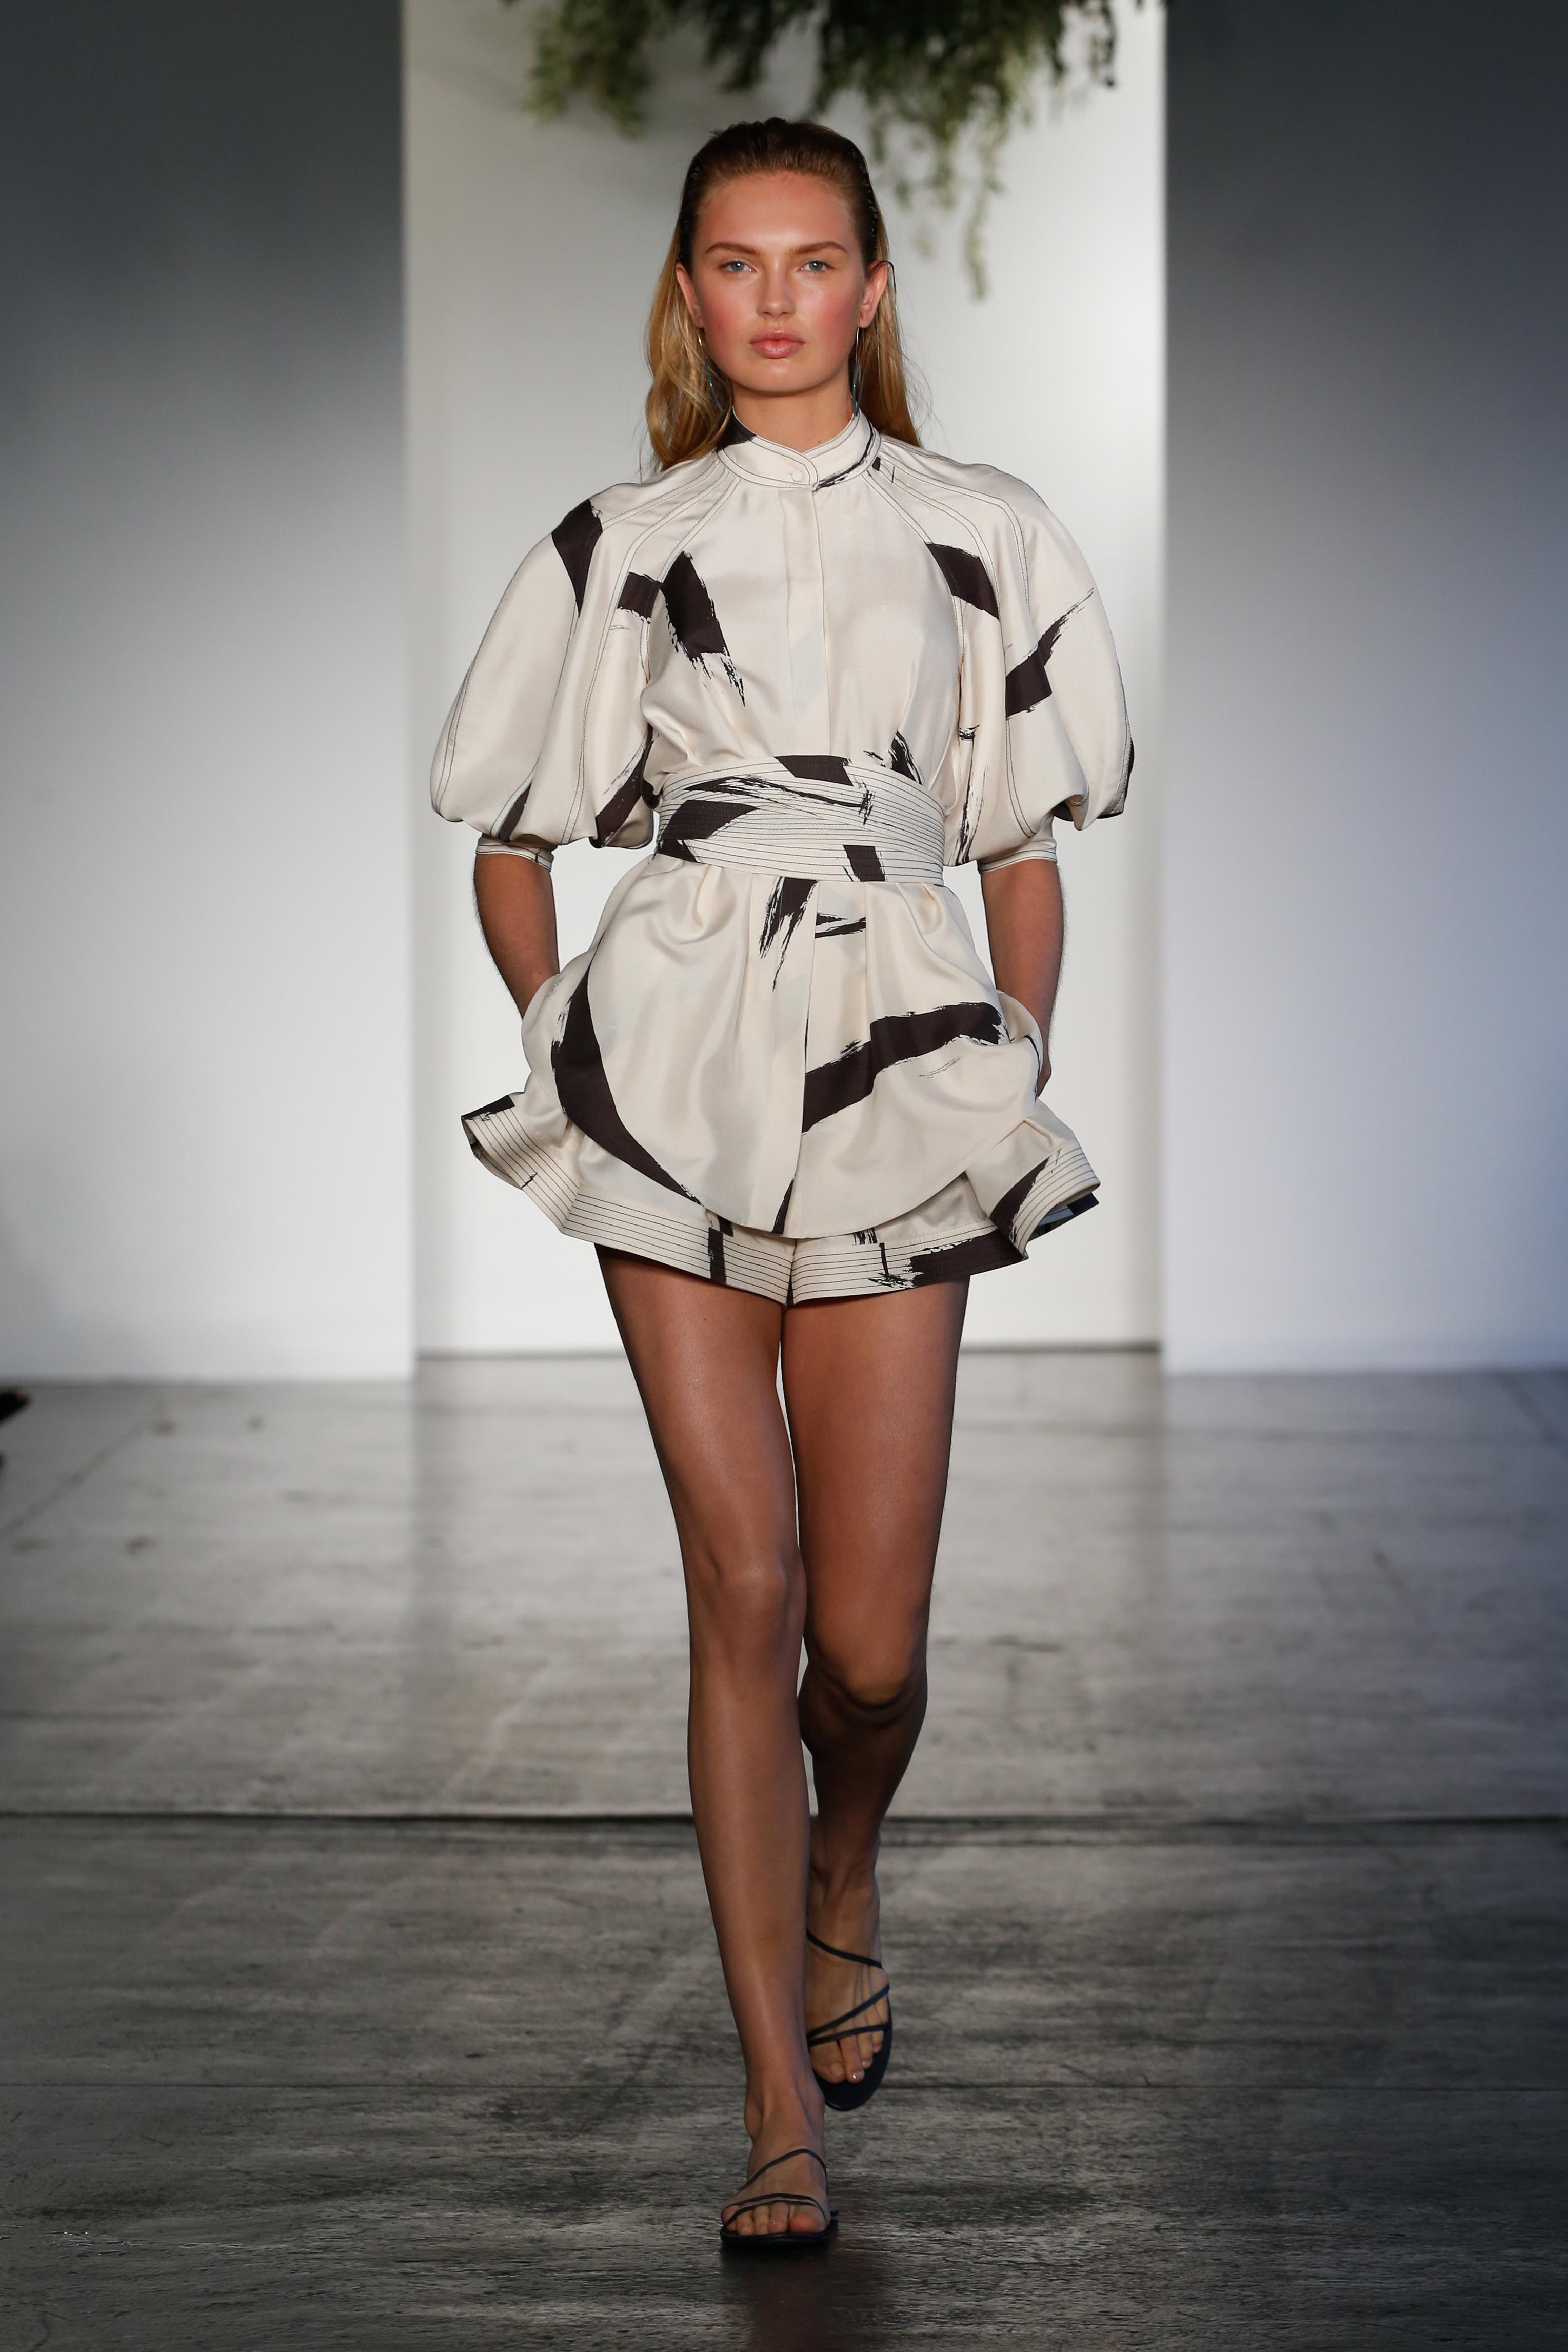 "<p>There was a cool confidence to Australian label Zimmermann's New York runway show for resort embodied by model Romee Strijd who opened the romantic presentation.<br /> <br /> The <a href=""http://style.nine.com.au/2016/12/01/07/46/victorias-secret-2016-paris-gigi-bella-adriana-kendall"" target=""_blank"">Victoria's Secret</a> angel led the way with textured linens, cotton day dresses and painterly strokes ushering in the new season. <br /> <br /> ""Resort is always a collection for us to have fun with, to keep relaxed and to explore ideas and themes that are inherently Zimmermann at their heart. Our muse for the season is passionate, creative, she's feminine but strong and independent,"" says the label's creative director Nicky Zimmermann.<br /> <br /> The Australian brand, which found fame with swimwear had been focusing on the US with stores in Los Angeles and New York.  </p> <p> See their latest looks here.</p> <p><em><strong>Romee Strid for Zimmermann Resort '18, New York </strong></em></p>"